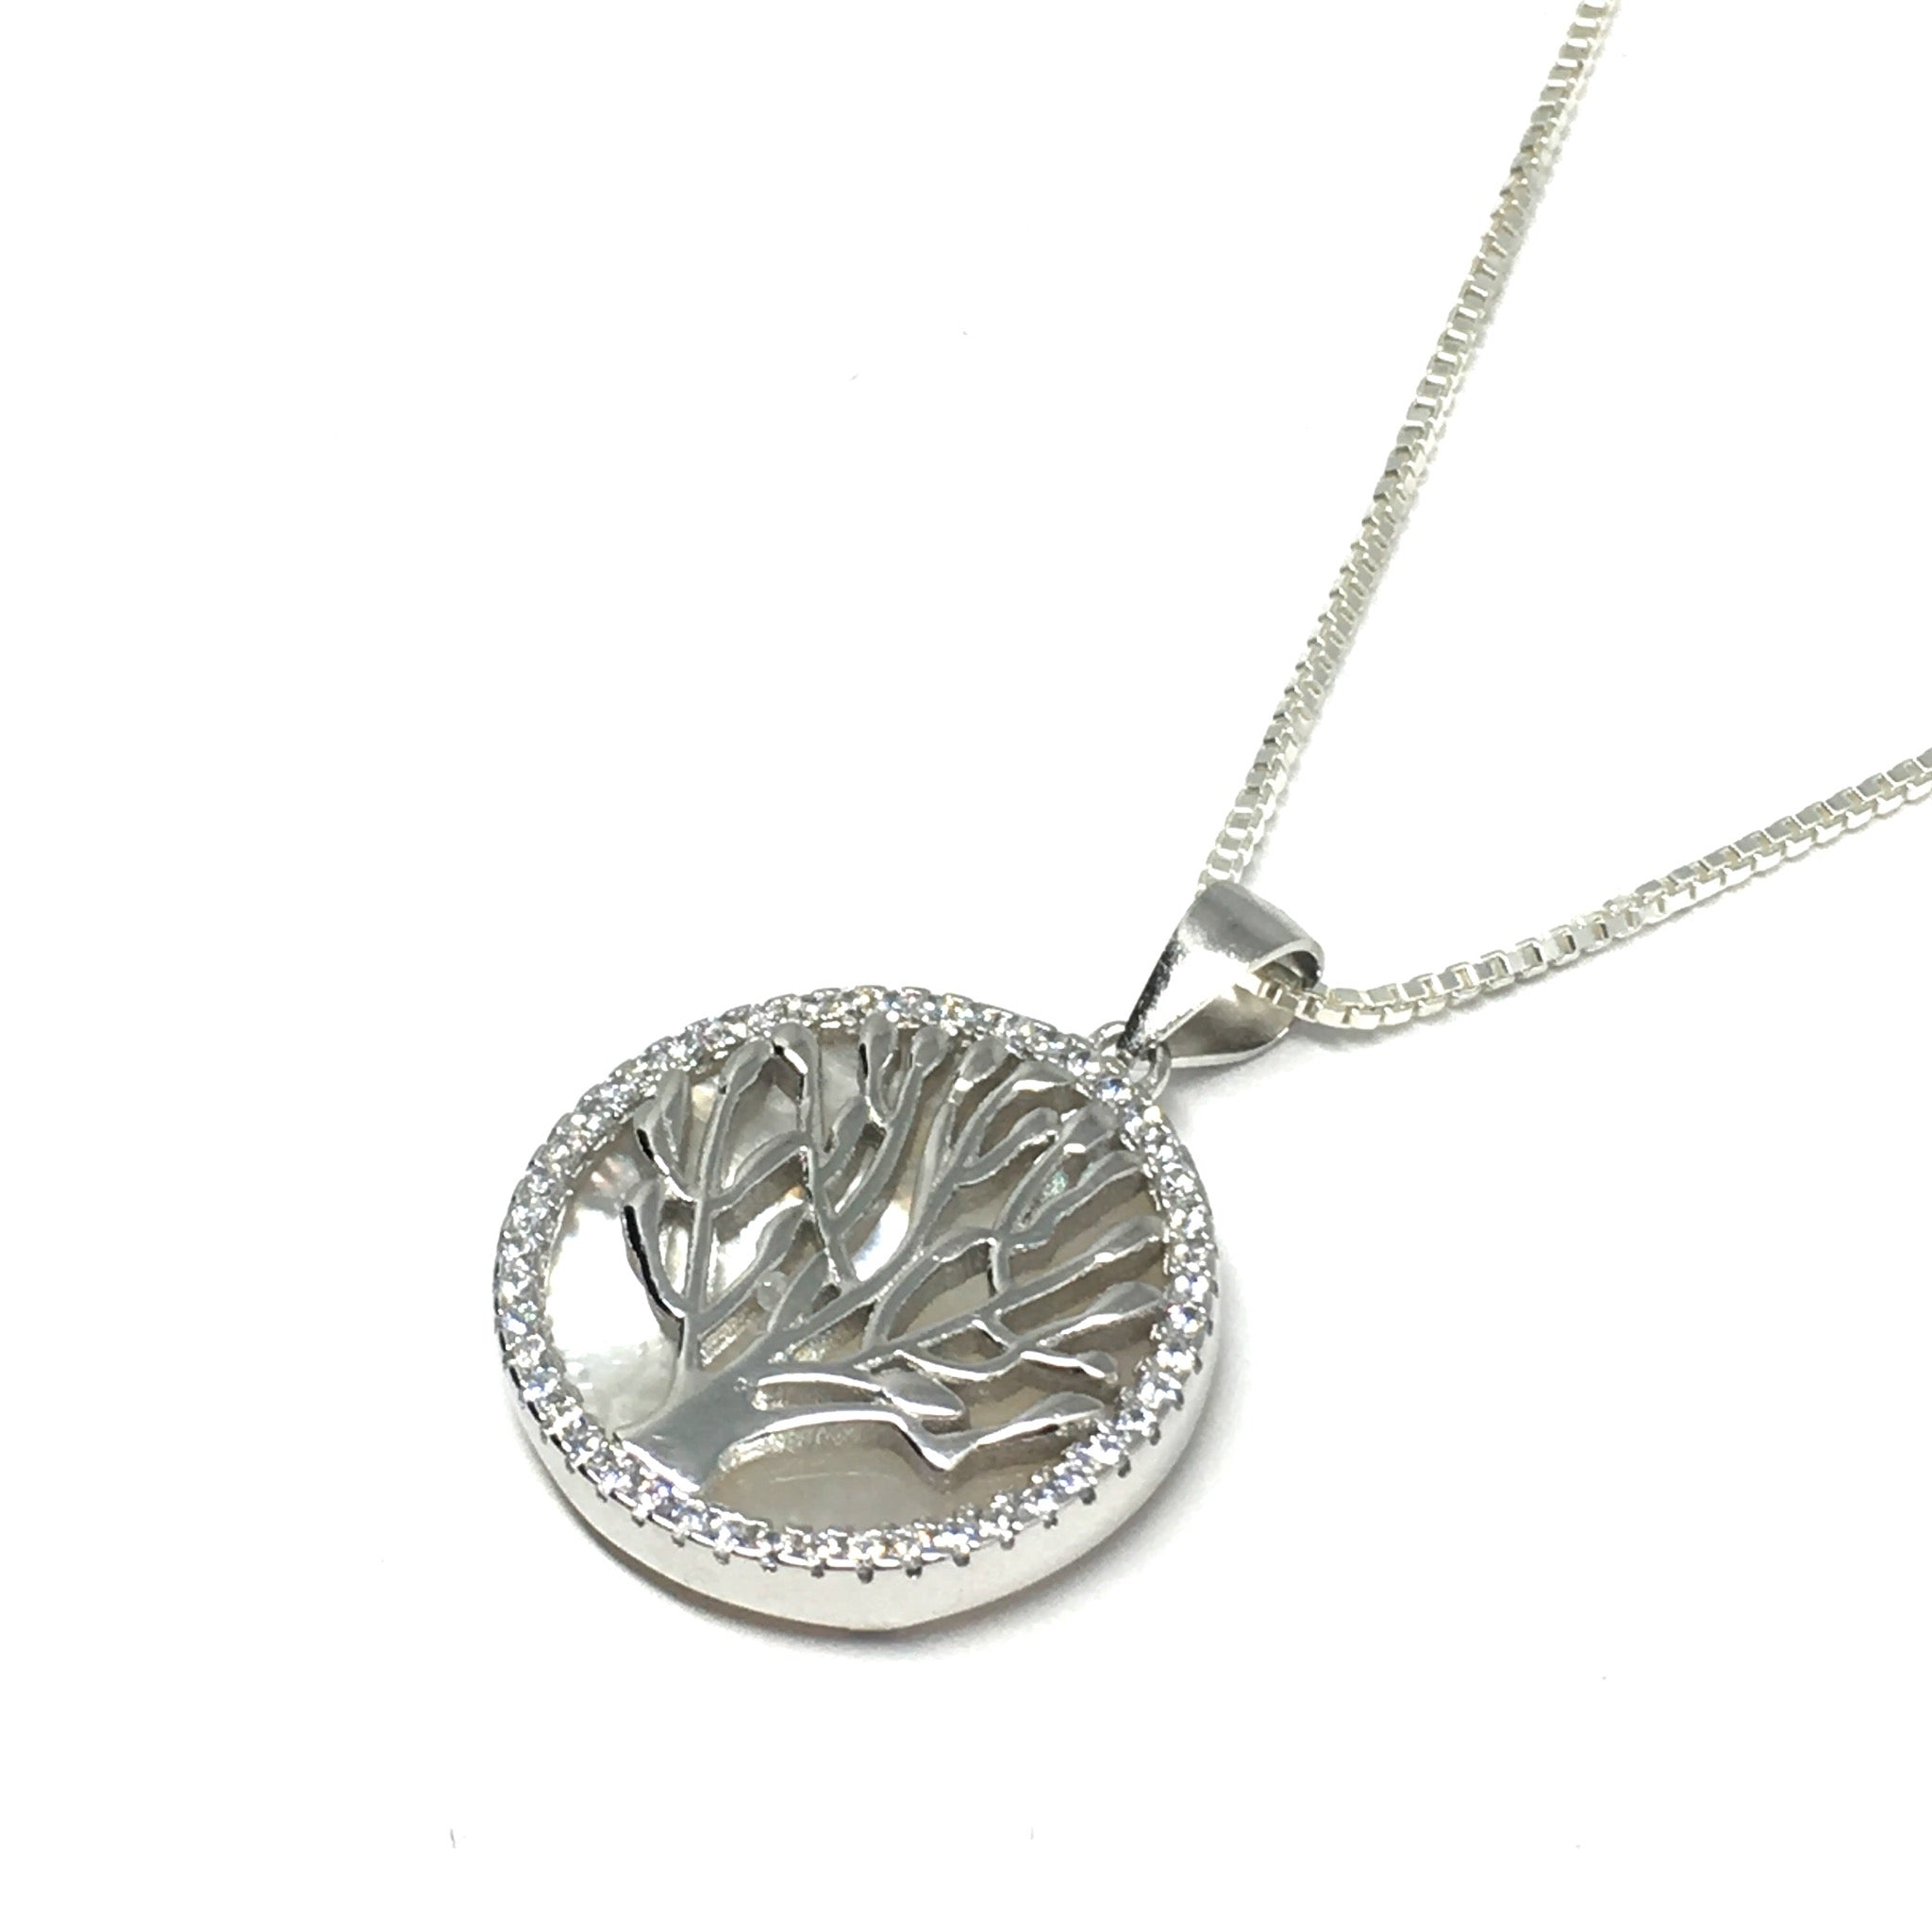 jewellery products mother godmother of tree life my family grandmother personalised image necklace pendant